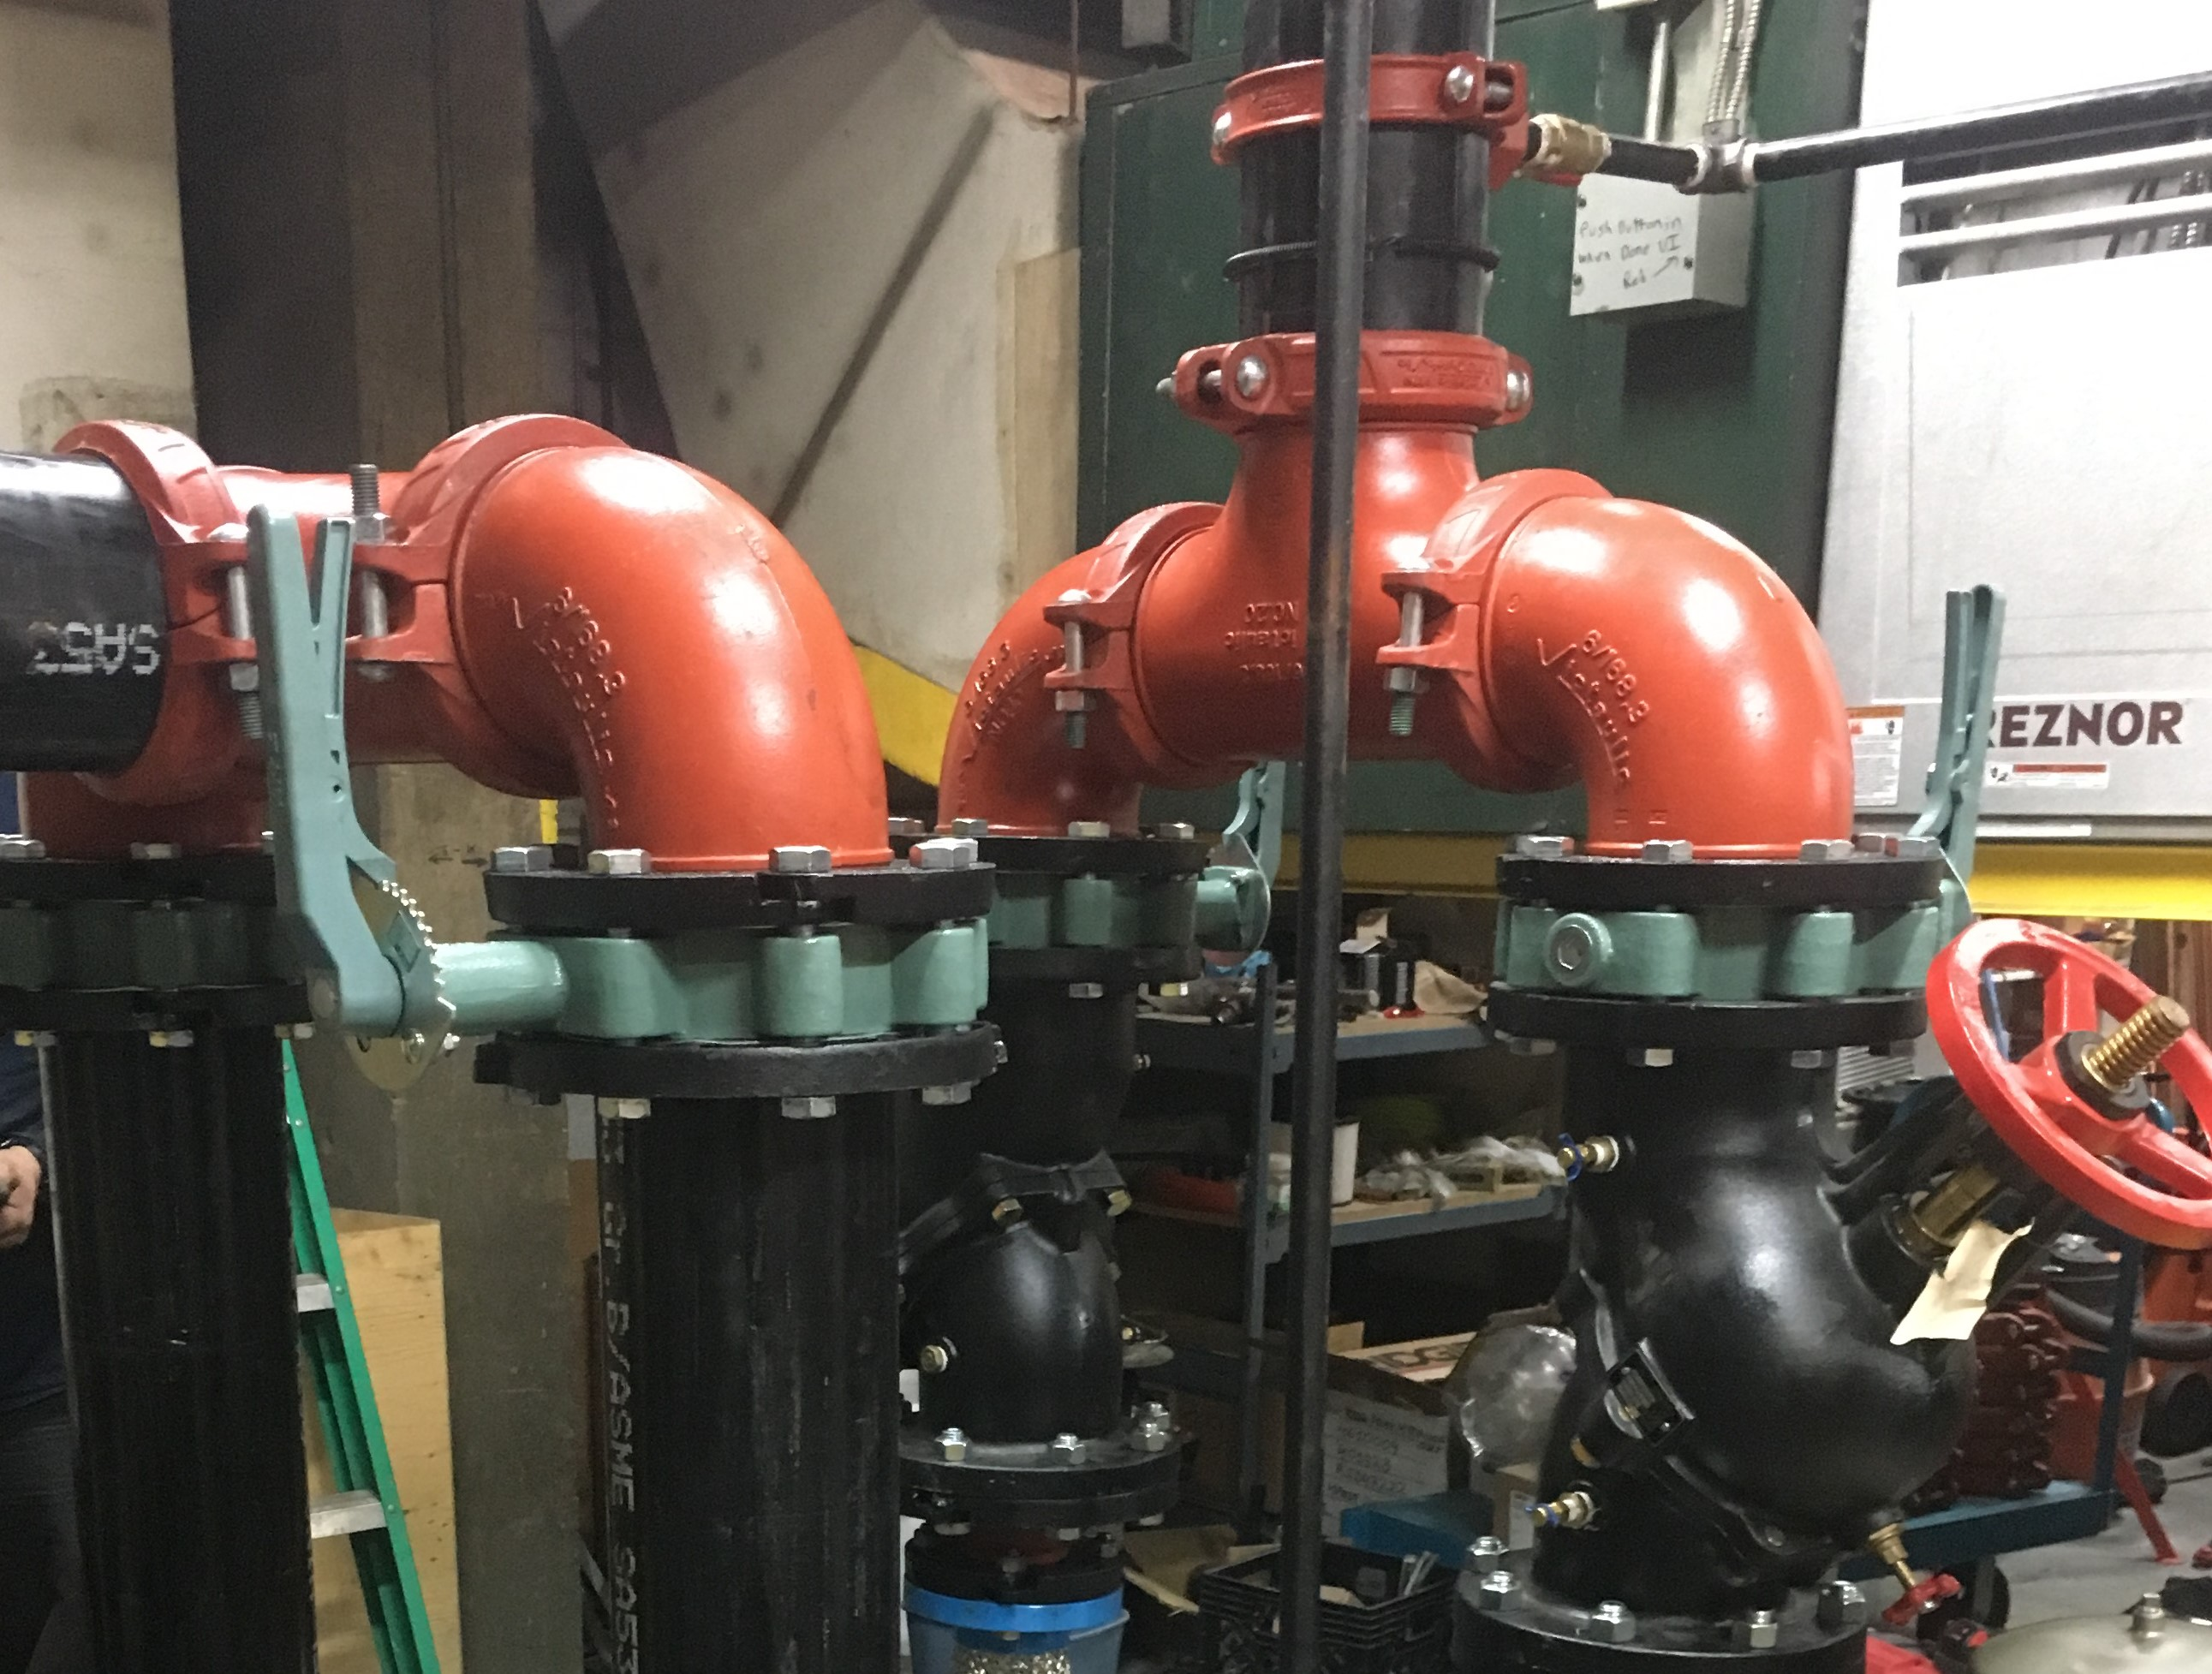 Red and black pipes in industrial room